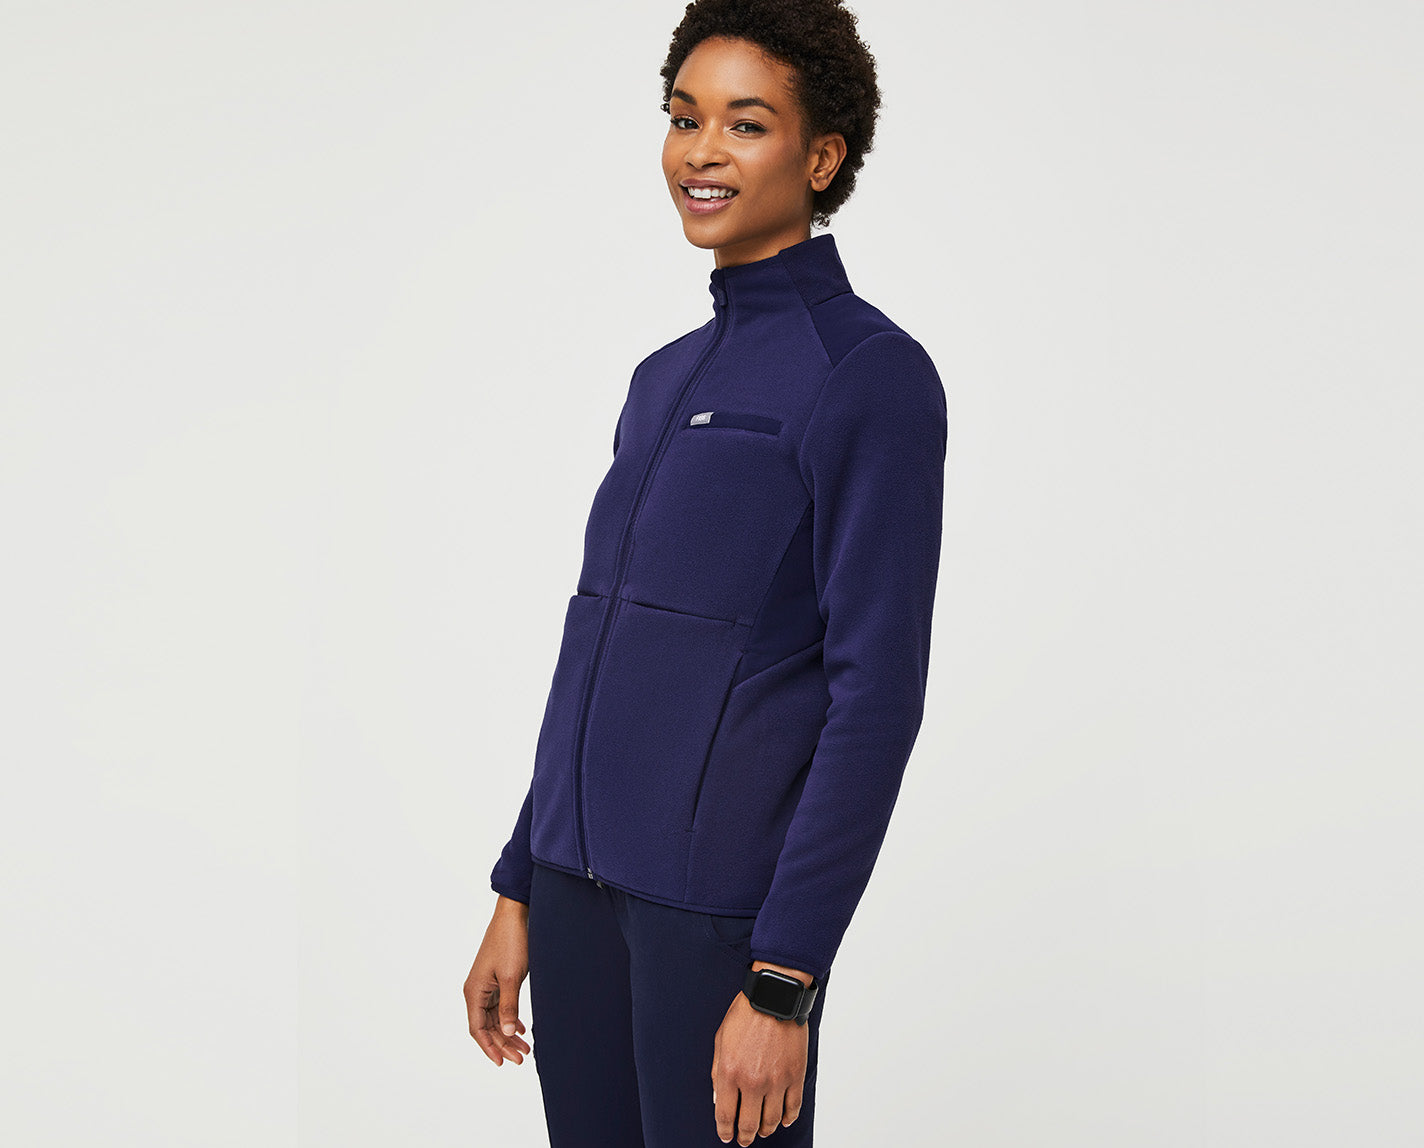 Our On-Shift Fleece Jacket is the ideal layer to combat A/C-friendly hospitals. Or unpredictable weather patterns. And, yes, of course it has lots of pockets.